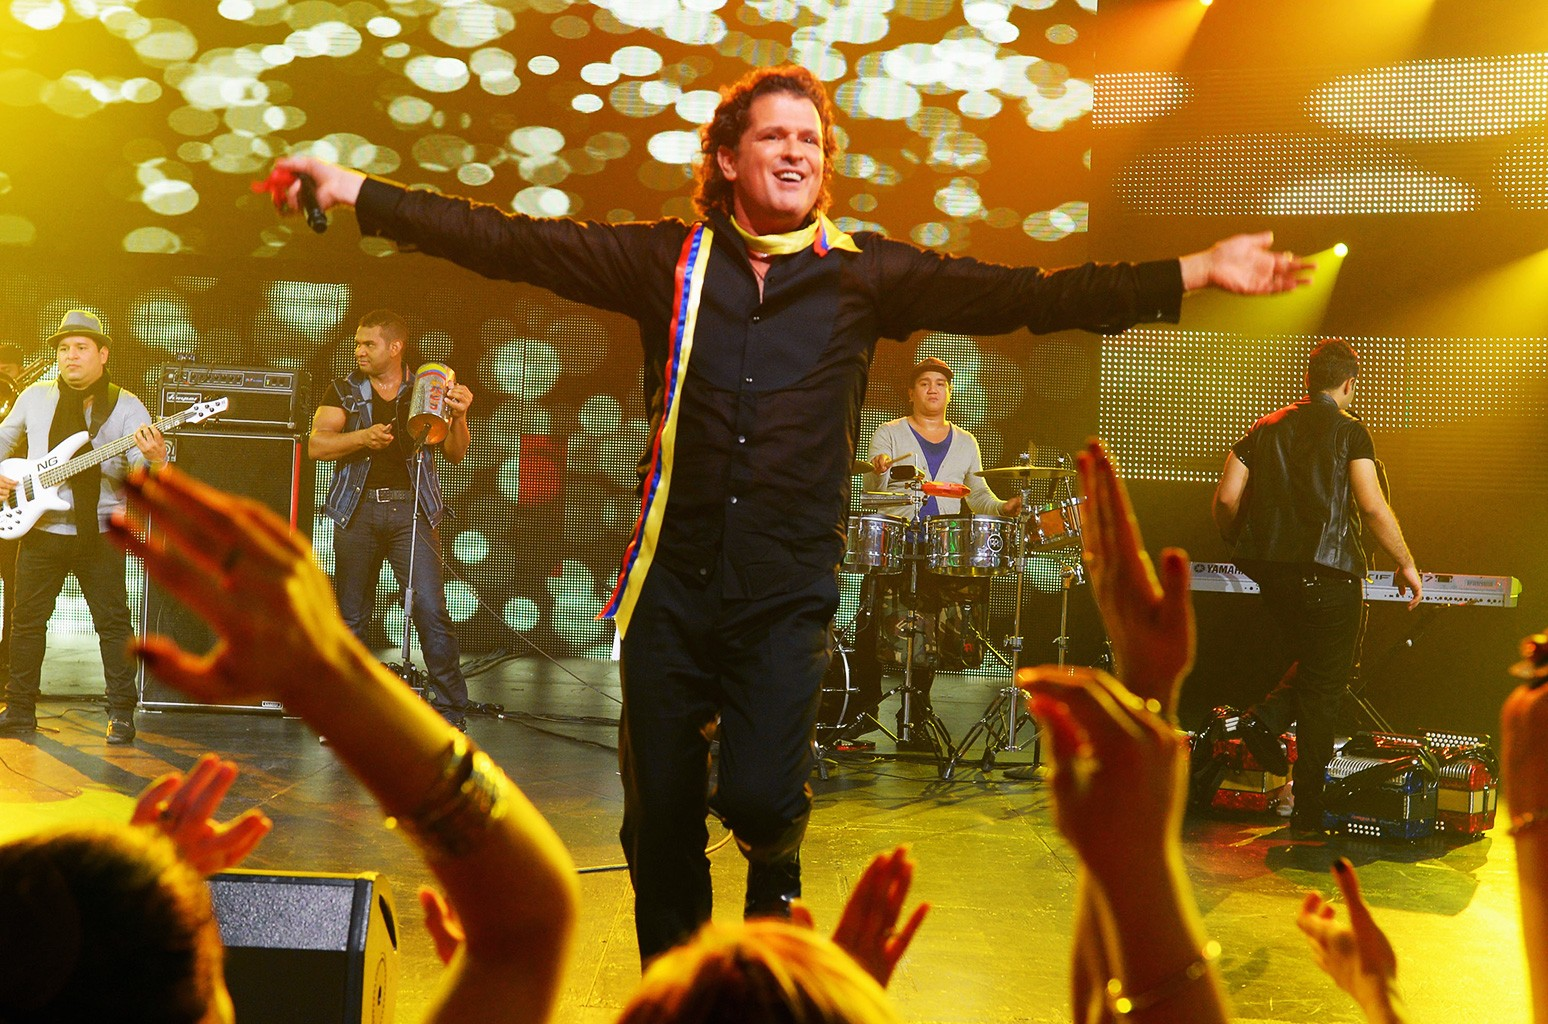 Carlos Vives performs onstage at The 14th Annual Latin Grammy Awards after party at the Mandalay Bay Events Center on Nov. 21, 2013 in Las Vegas.